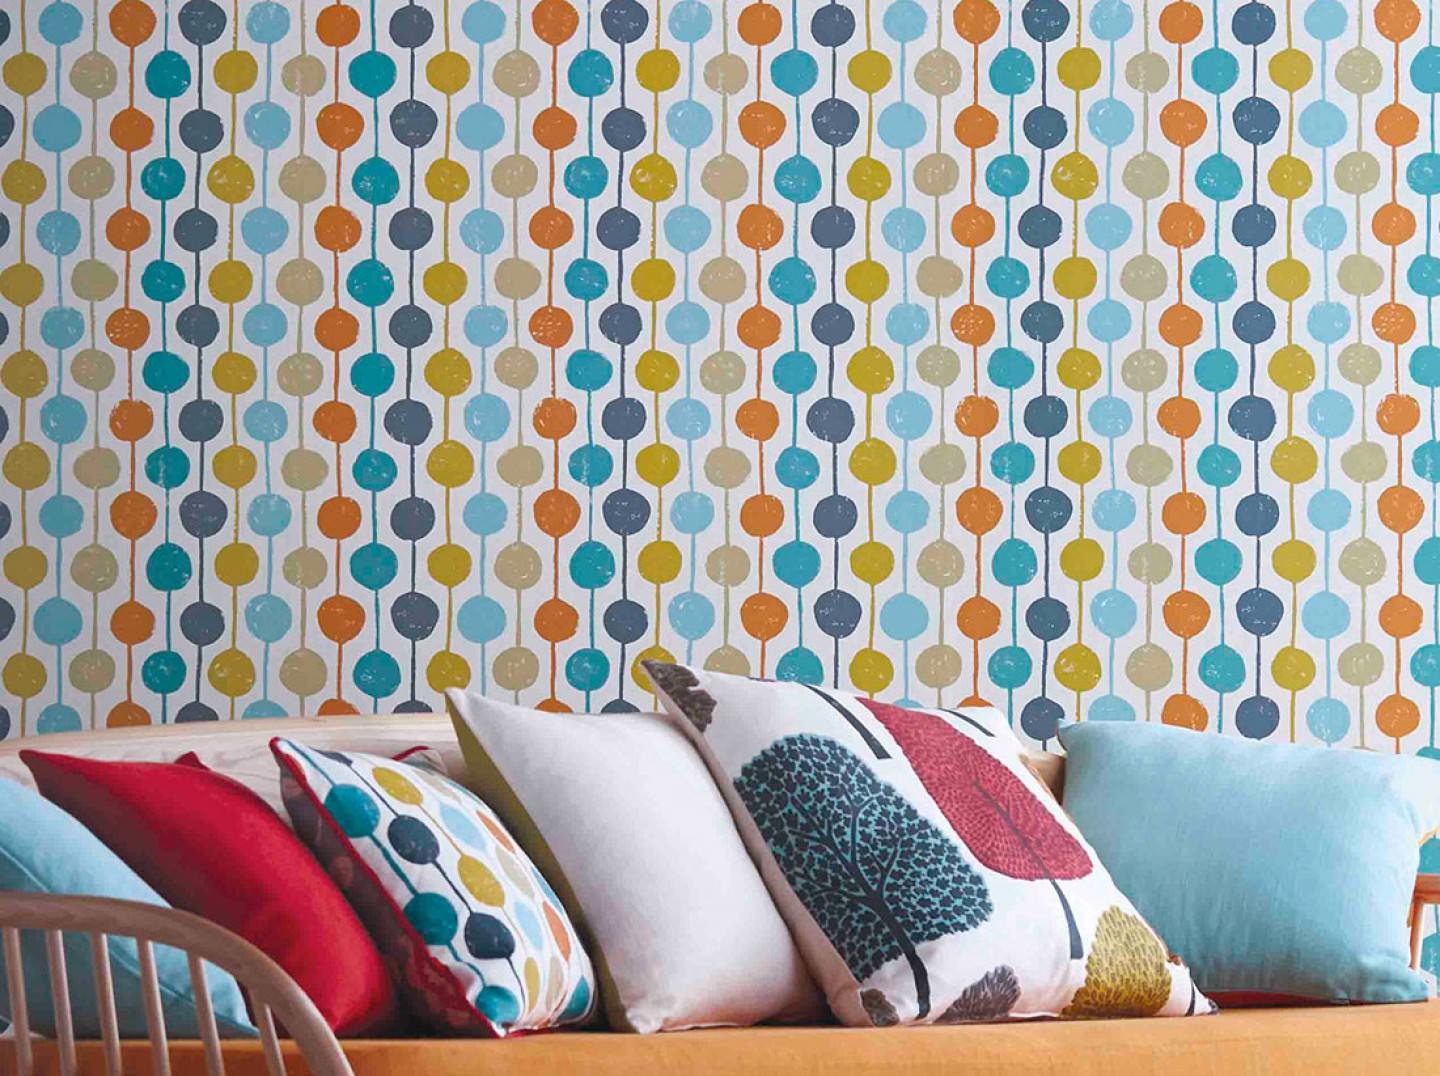 Wallpaper Almeda Cream Dark Grey Mint Turquoise Ochre Yellow Olive Yellow Orange Wallpaper From The 70s